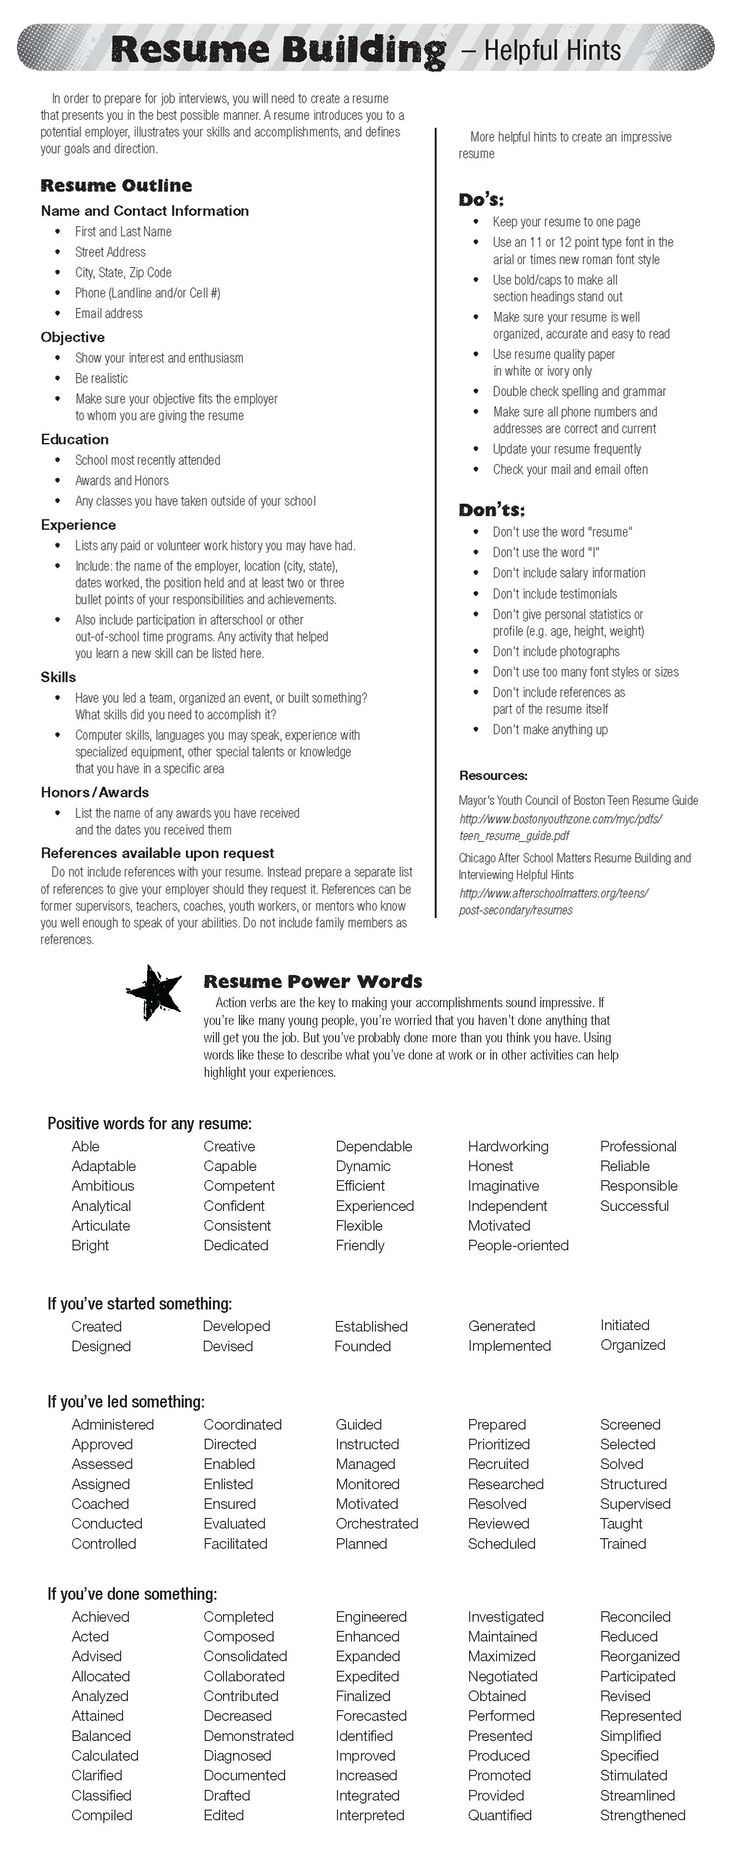 Opposenewapstandardsus  Outstanding  Ideas About Resume On Pinterest  Cv Format Resume Cv And  With Marvelous  Ideas About Resume On Pinterest  Cv Format Resume Cv And Resume Templates With Awesome Designer Resume Templates Also Picture Of A Resume In Addition High School Student Resume For College And Two Types Of Resumes As Well As Job Resume Maker Additionally Sample Registered Nurse Resume From Pinterestcom With Opposenewapstandardsus  Marvelous  Ideas About Resume On Pinterest  Cv Format Resume Cv And  With Awesome  Ideas About Resume On Pinterest  Cv Format Resume Cv And Resume Templates And Outstanding Designer Resume Templates Also Picture Of A Resume In Addition High School Student Resume For College From Pinterestcom